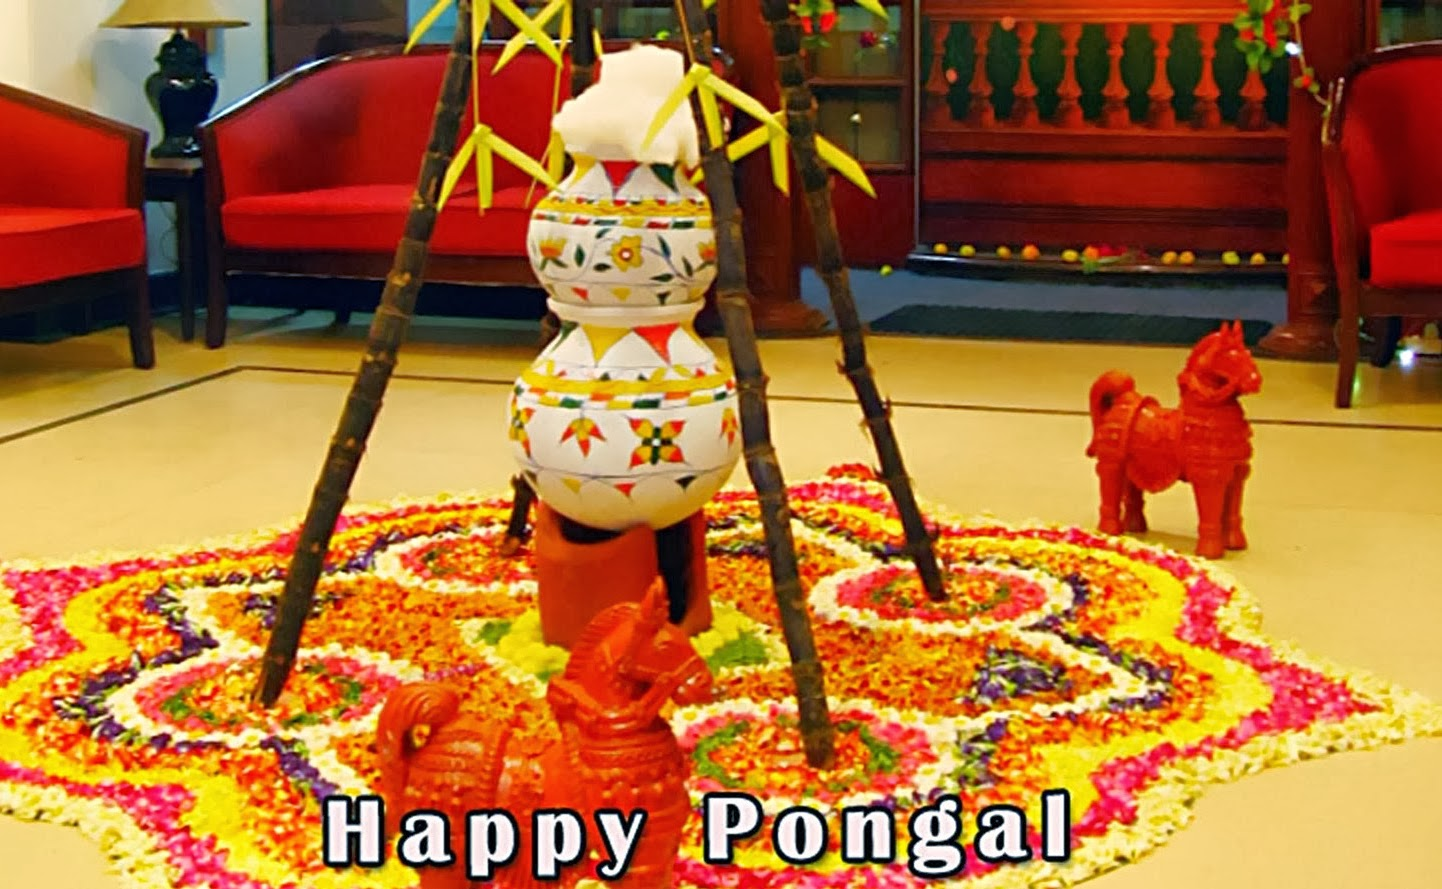 Happy Pongal Day Wishesgreeting Cardssms Messages Pongal